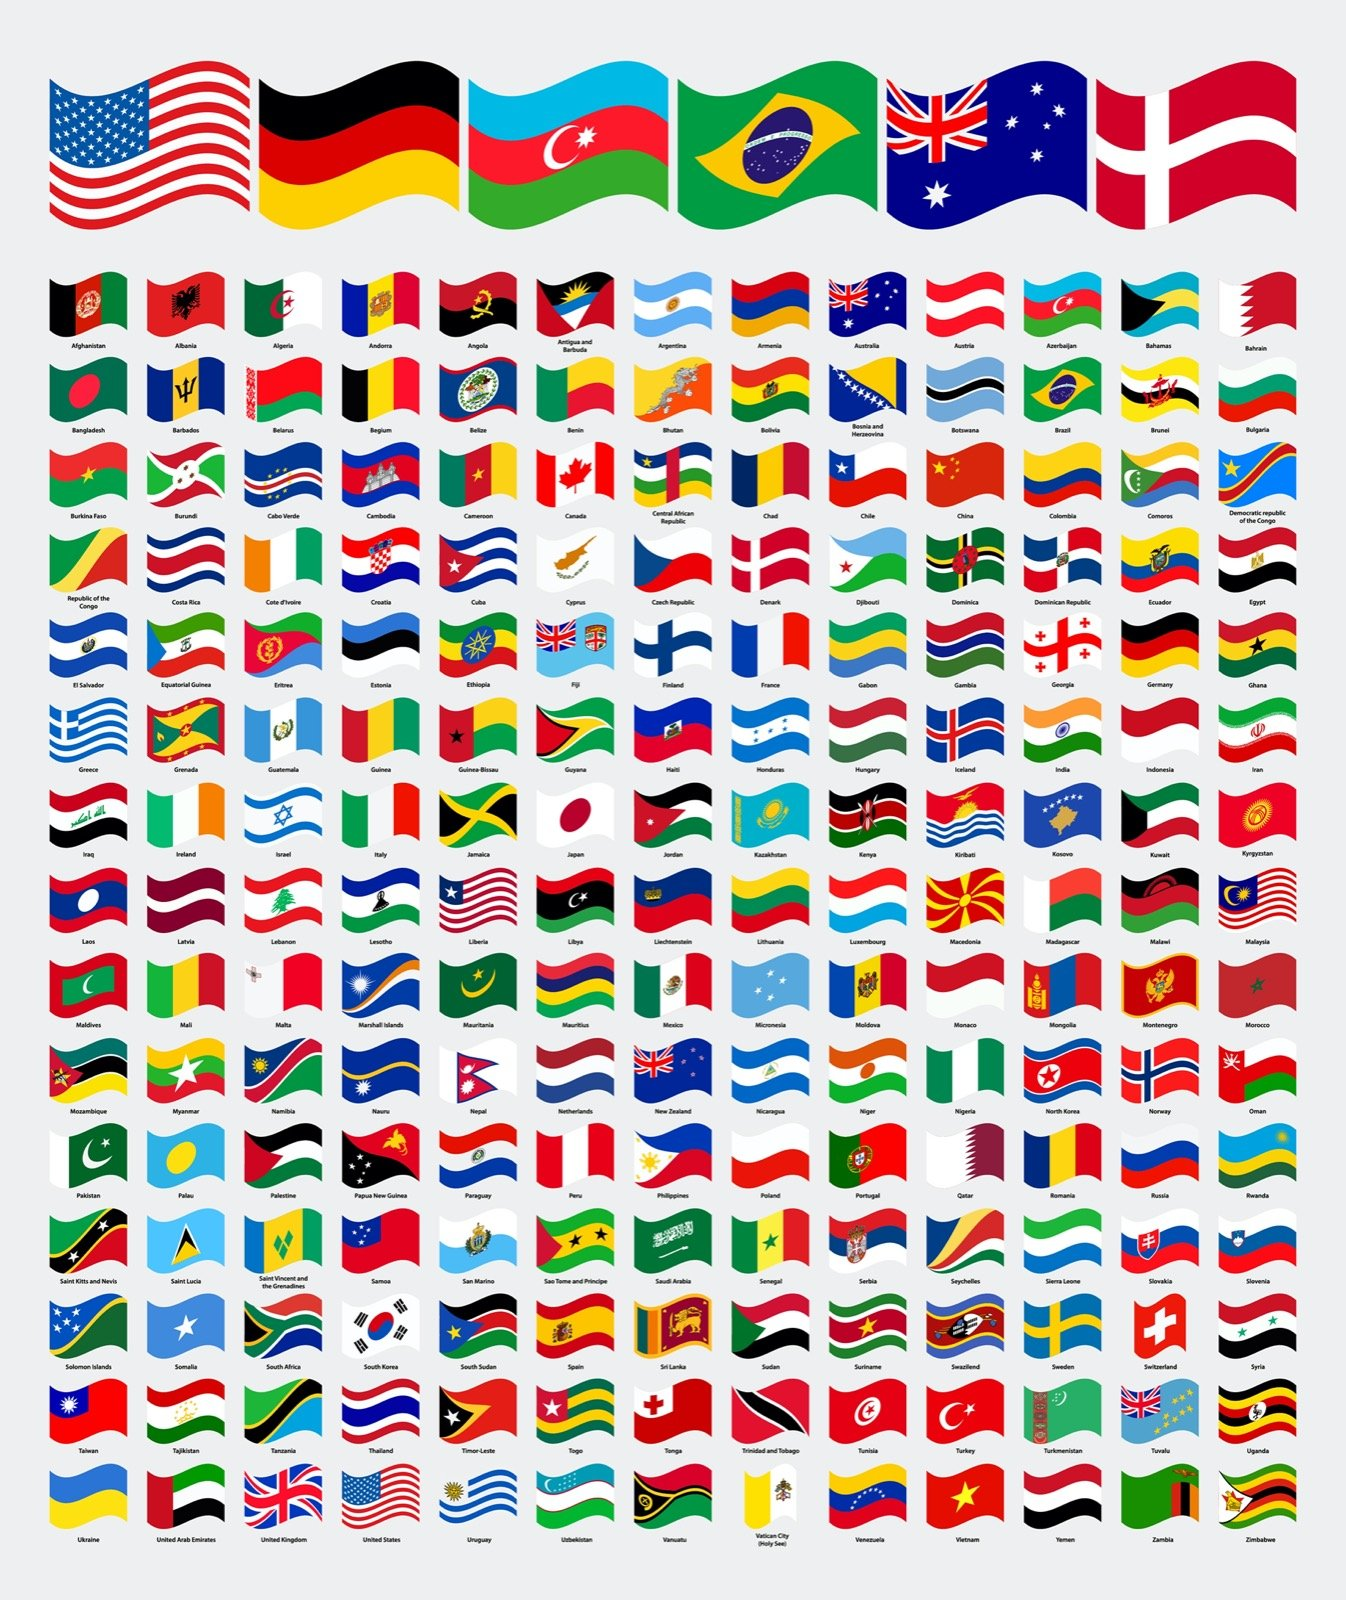 Illustration of different flag designs in the world